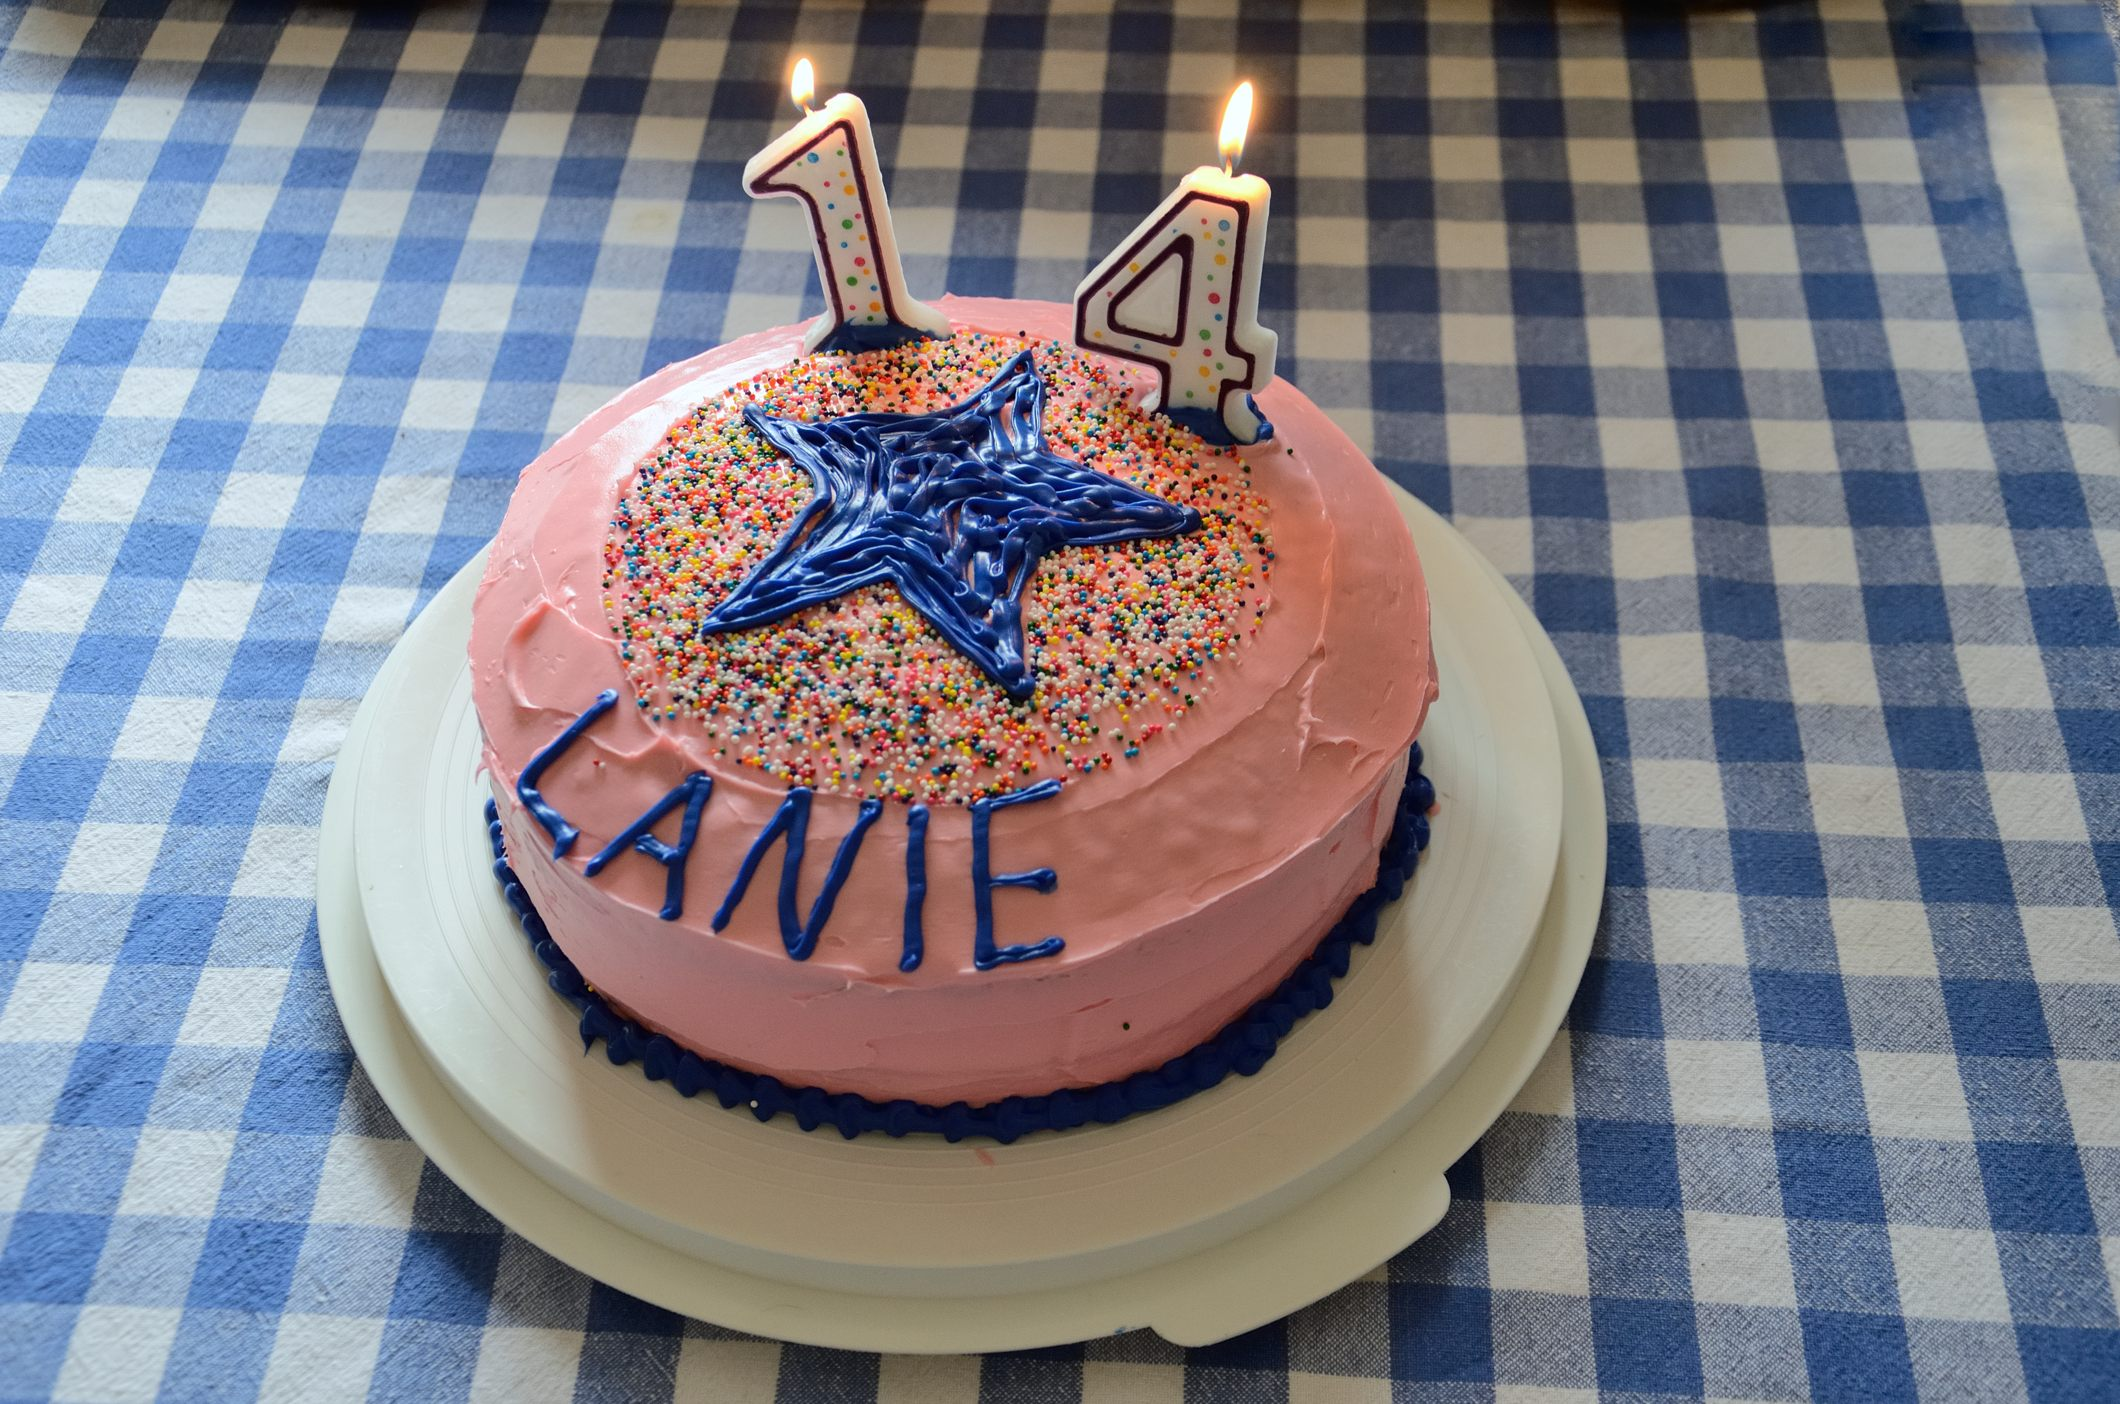 A pink iced birthday cake topped with a blue star pattern